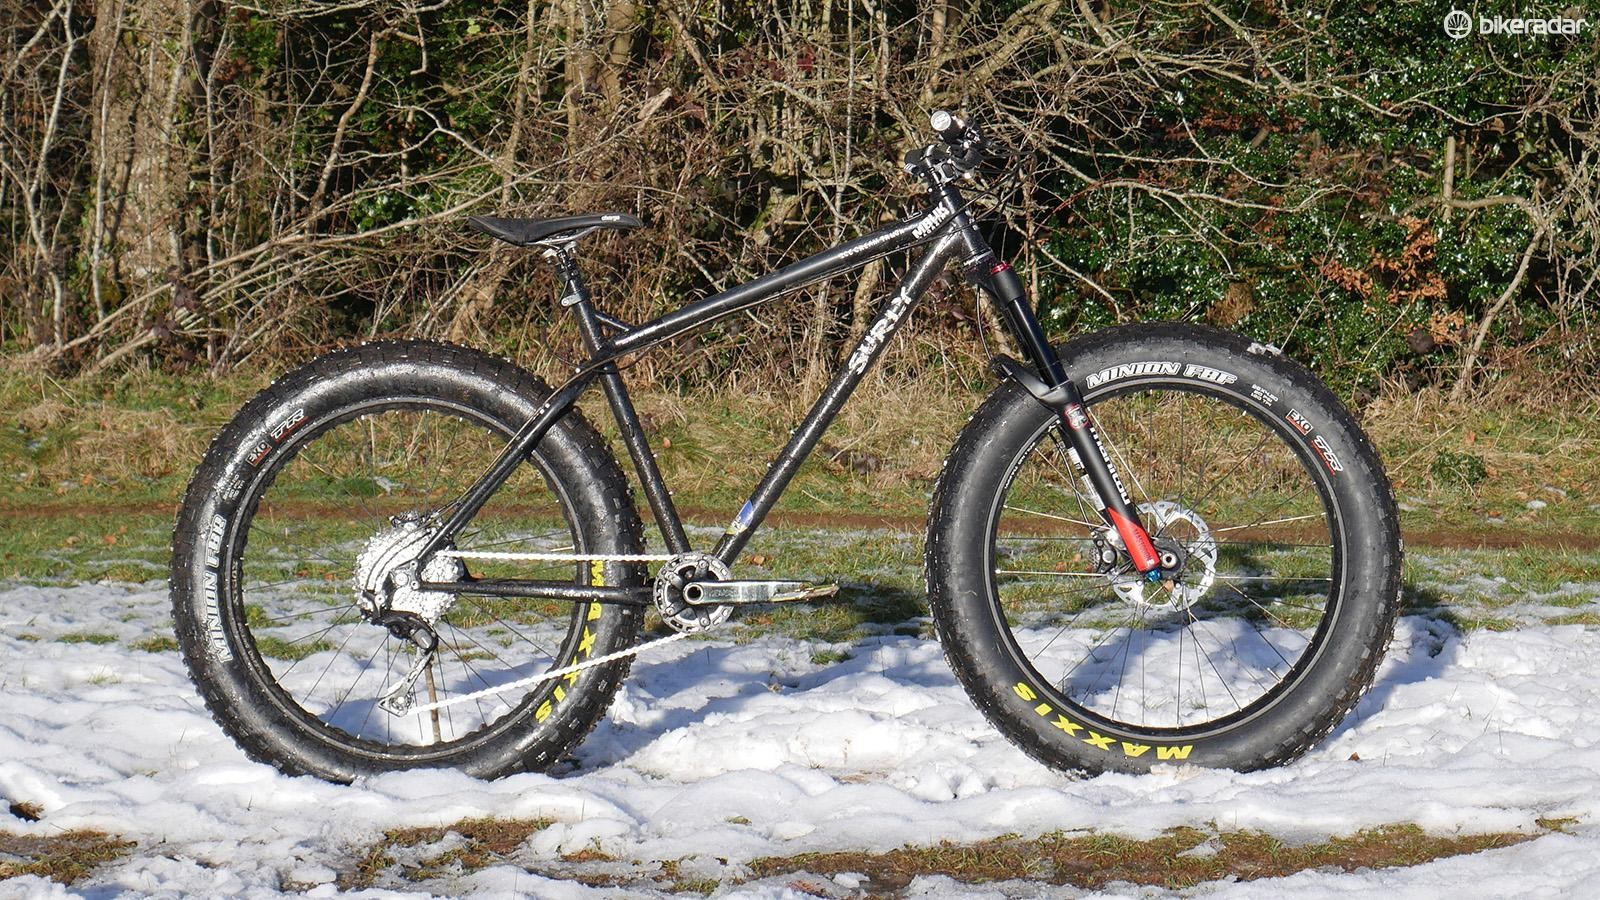 Manitou's Mastodon Pro fitted to my Surly test bike